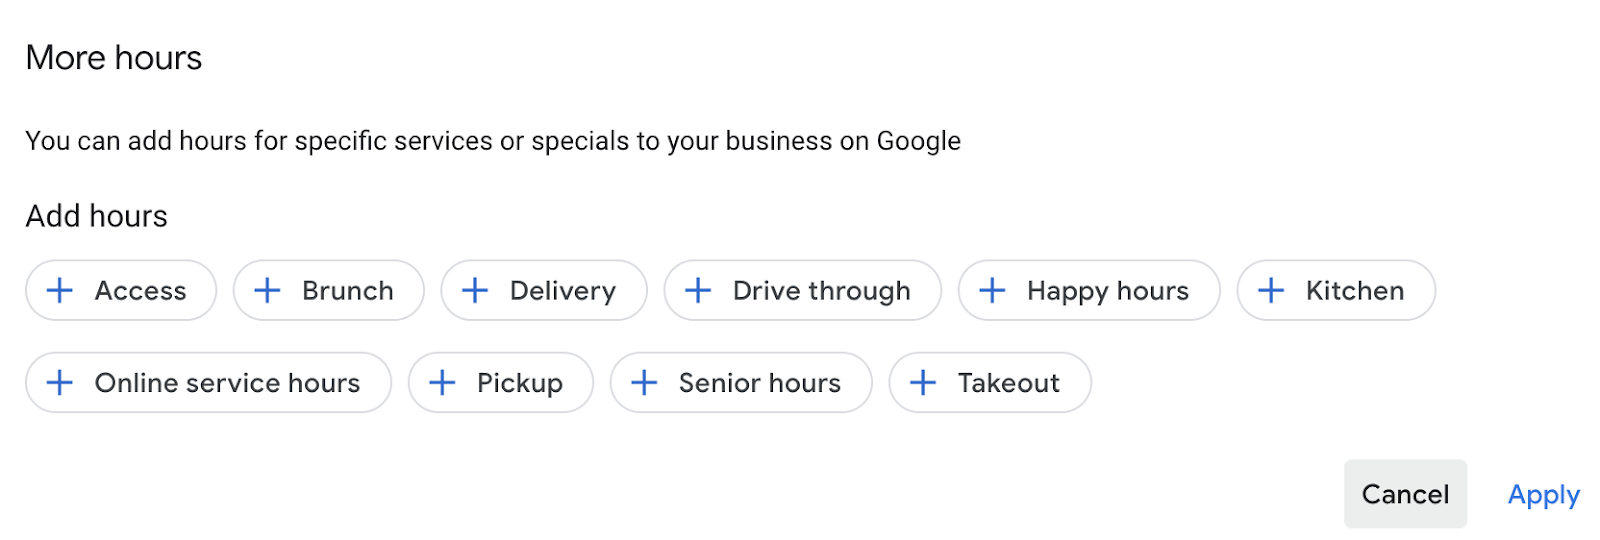 Google My Business More Hours Features For Listings